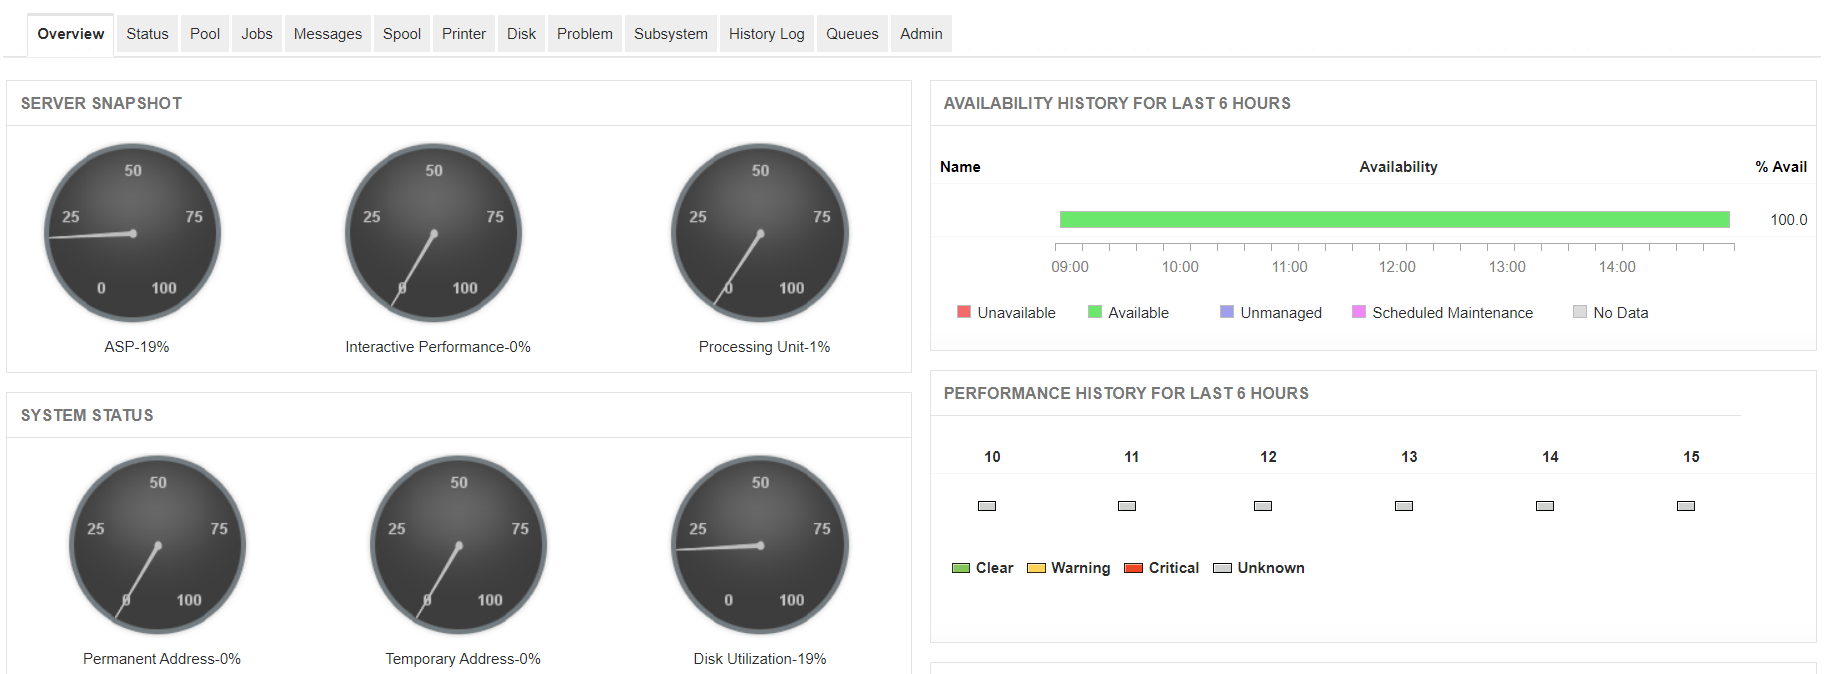 As400 / IBM i Monitoring - ManageEngine Applications Manager